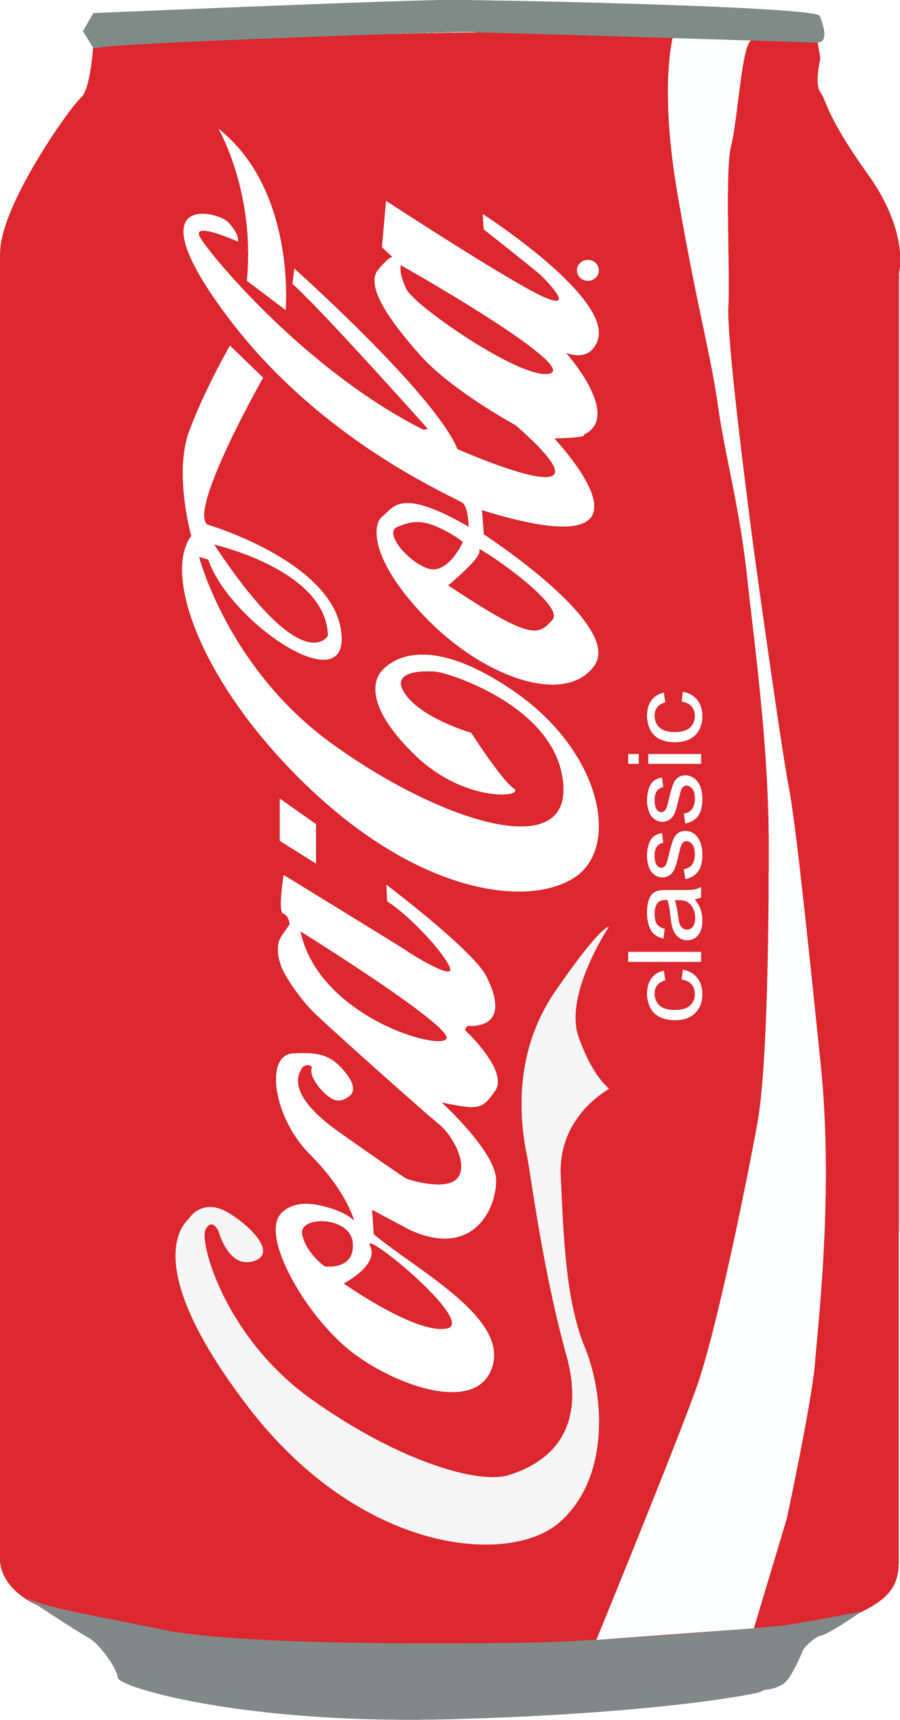 Soda clipart free images image.